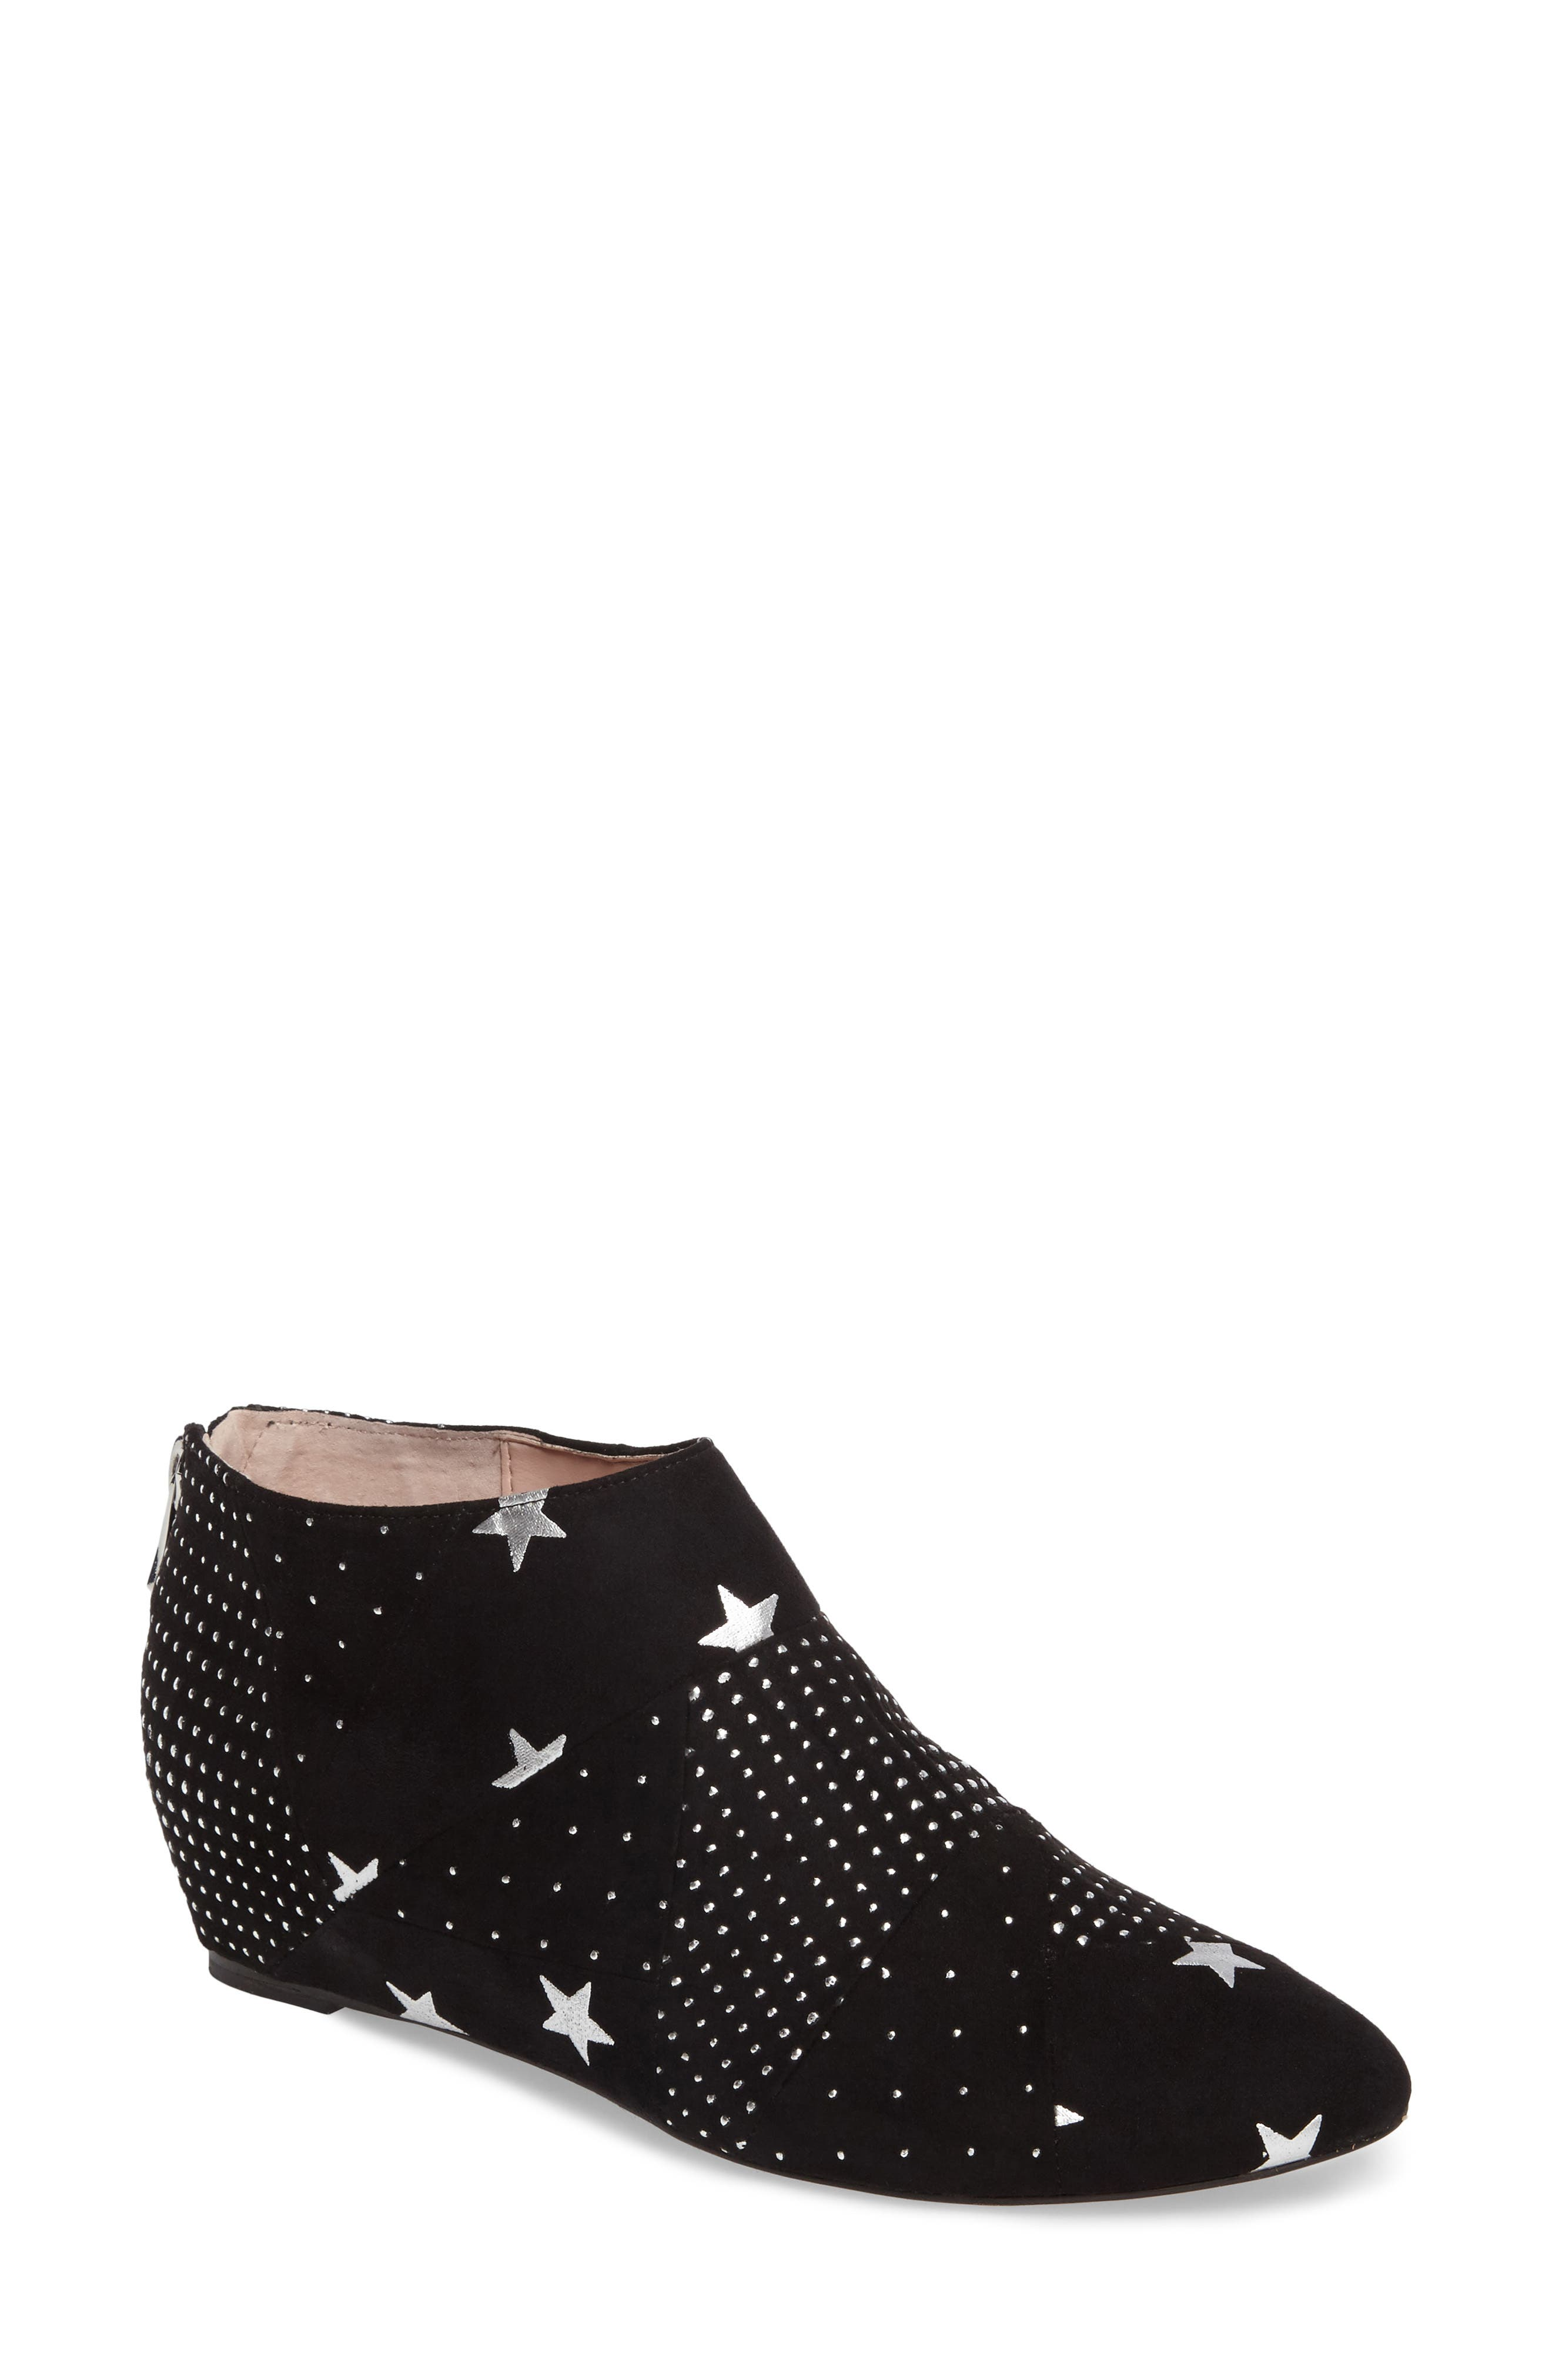 Aves Les Filles Beatrice Ankle Boot (Women)